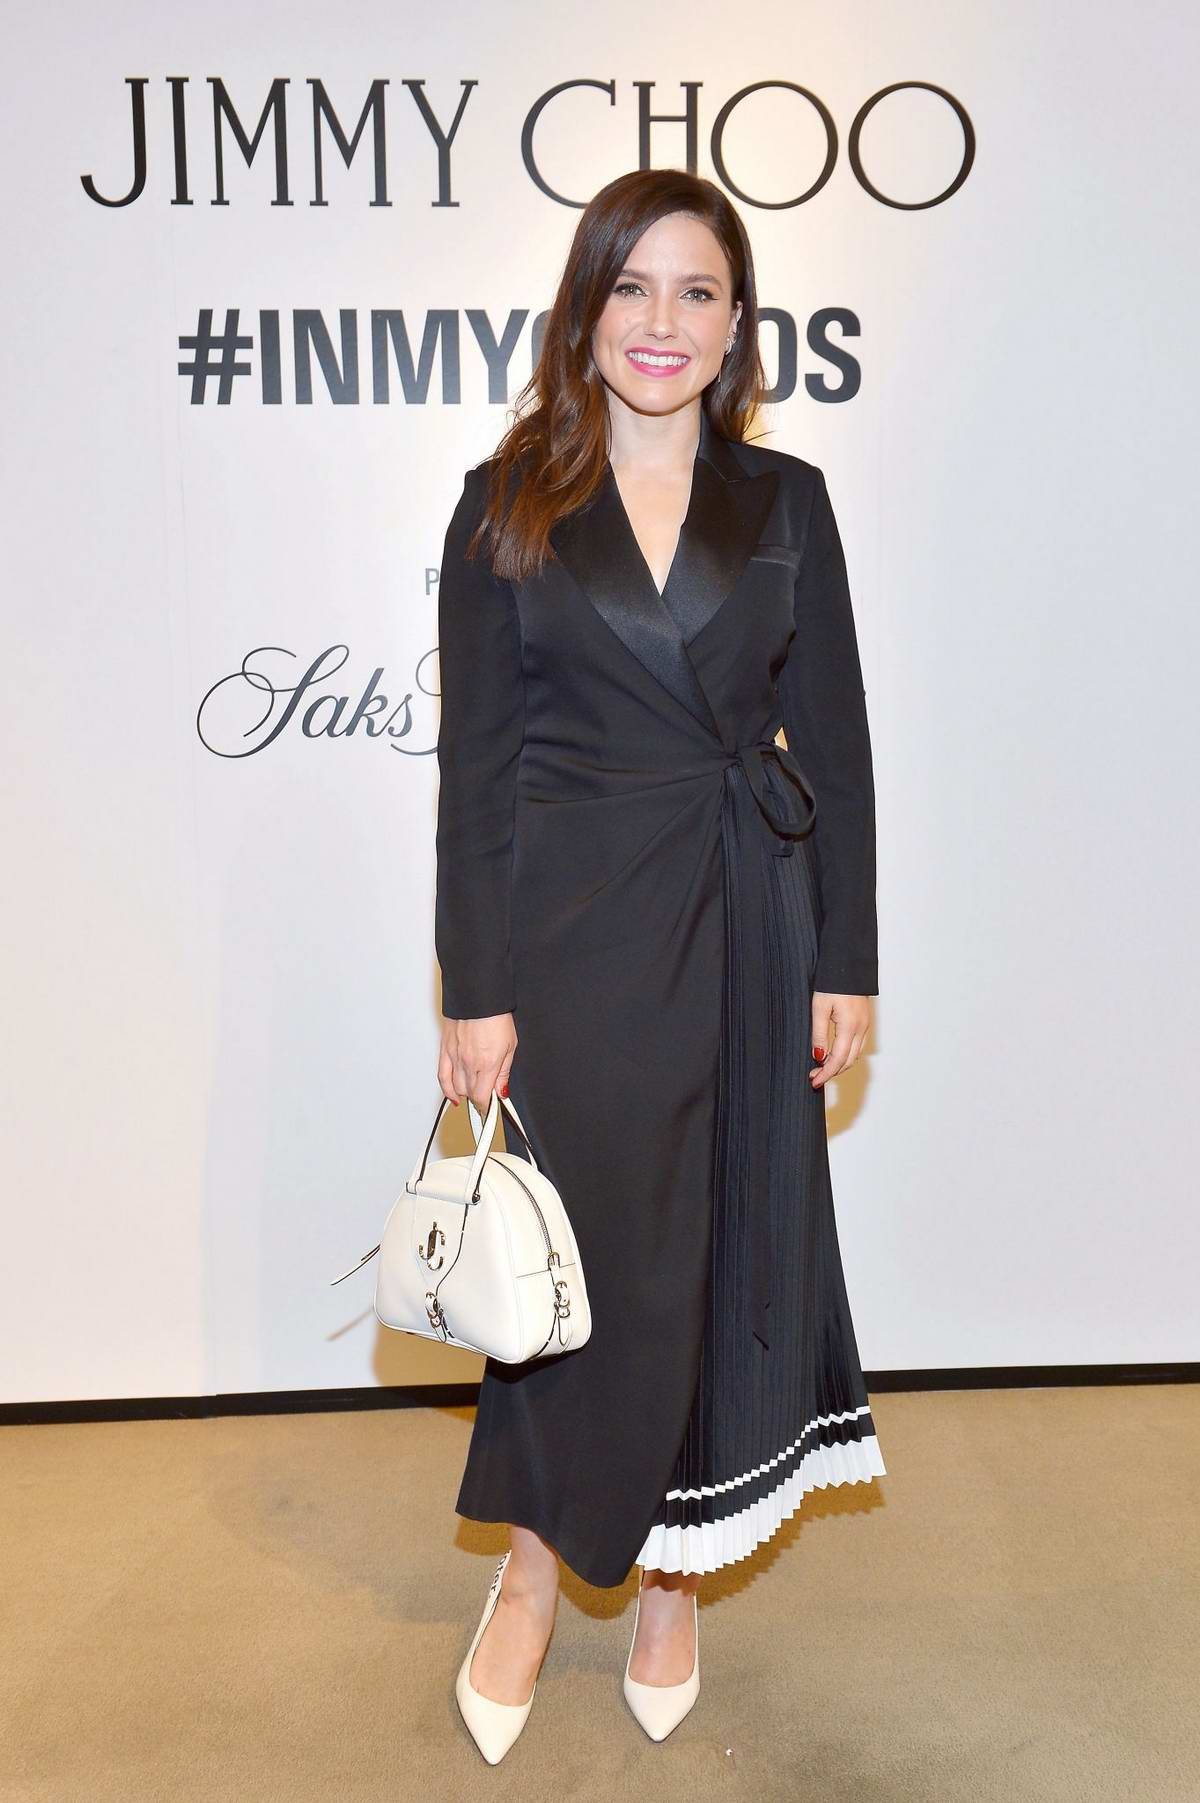 Sophia Bush attends Saks Beverly Hills 'In My Choos' event in Beverly Hills, Los Angeles